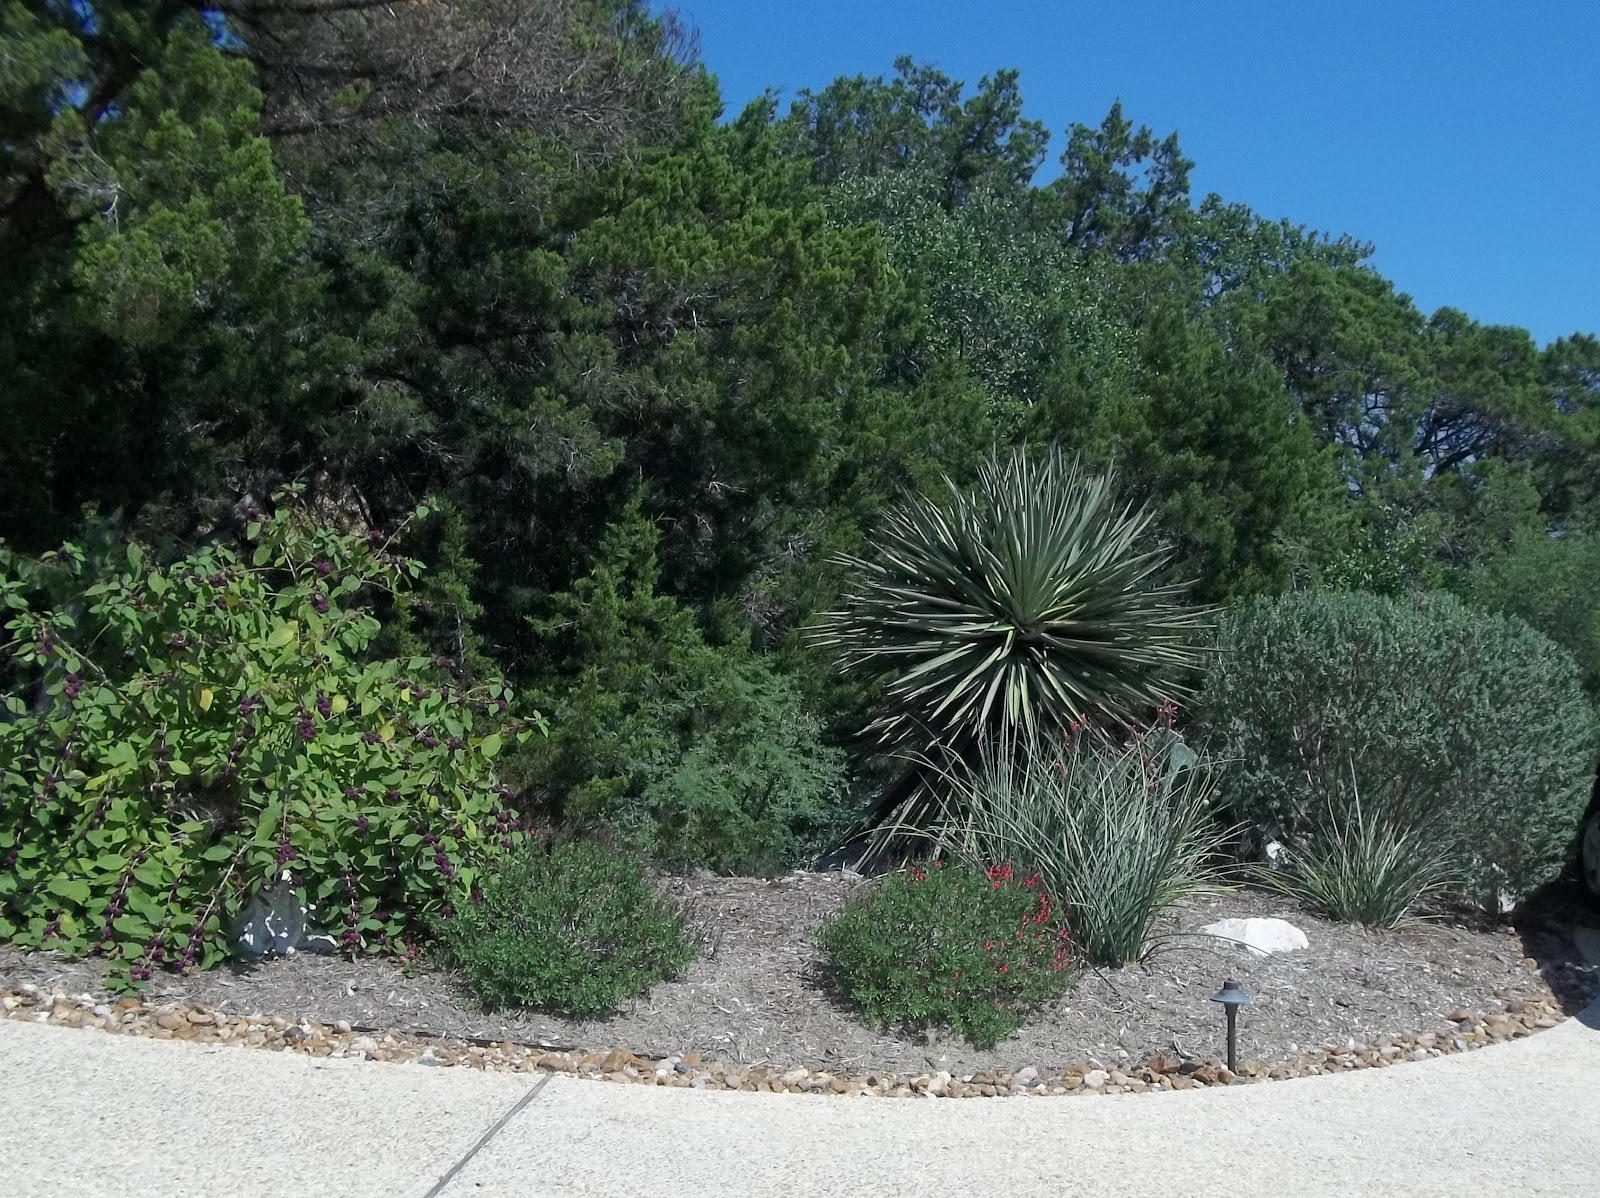 Parking Area Plantings  Very Xeric. Beautyberry On The Left, Yucca,  Hesperaloe, Autumn Sage.